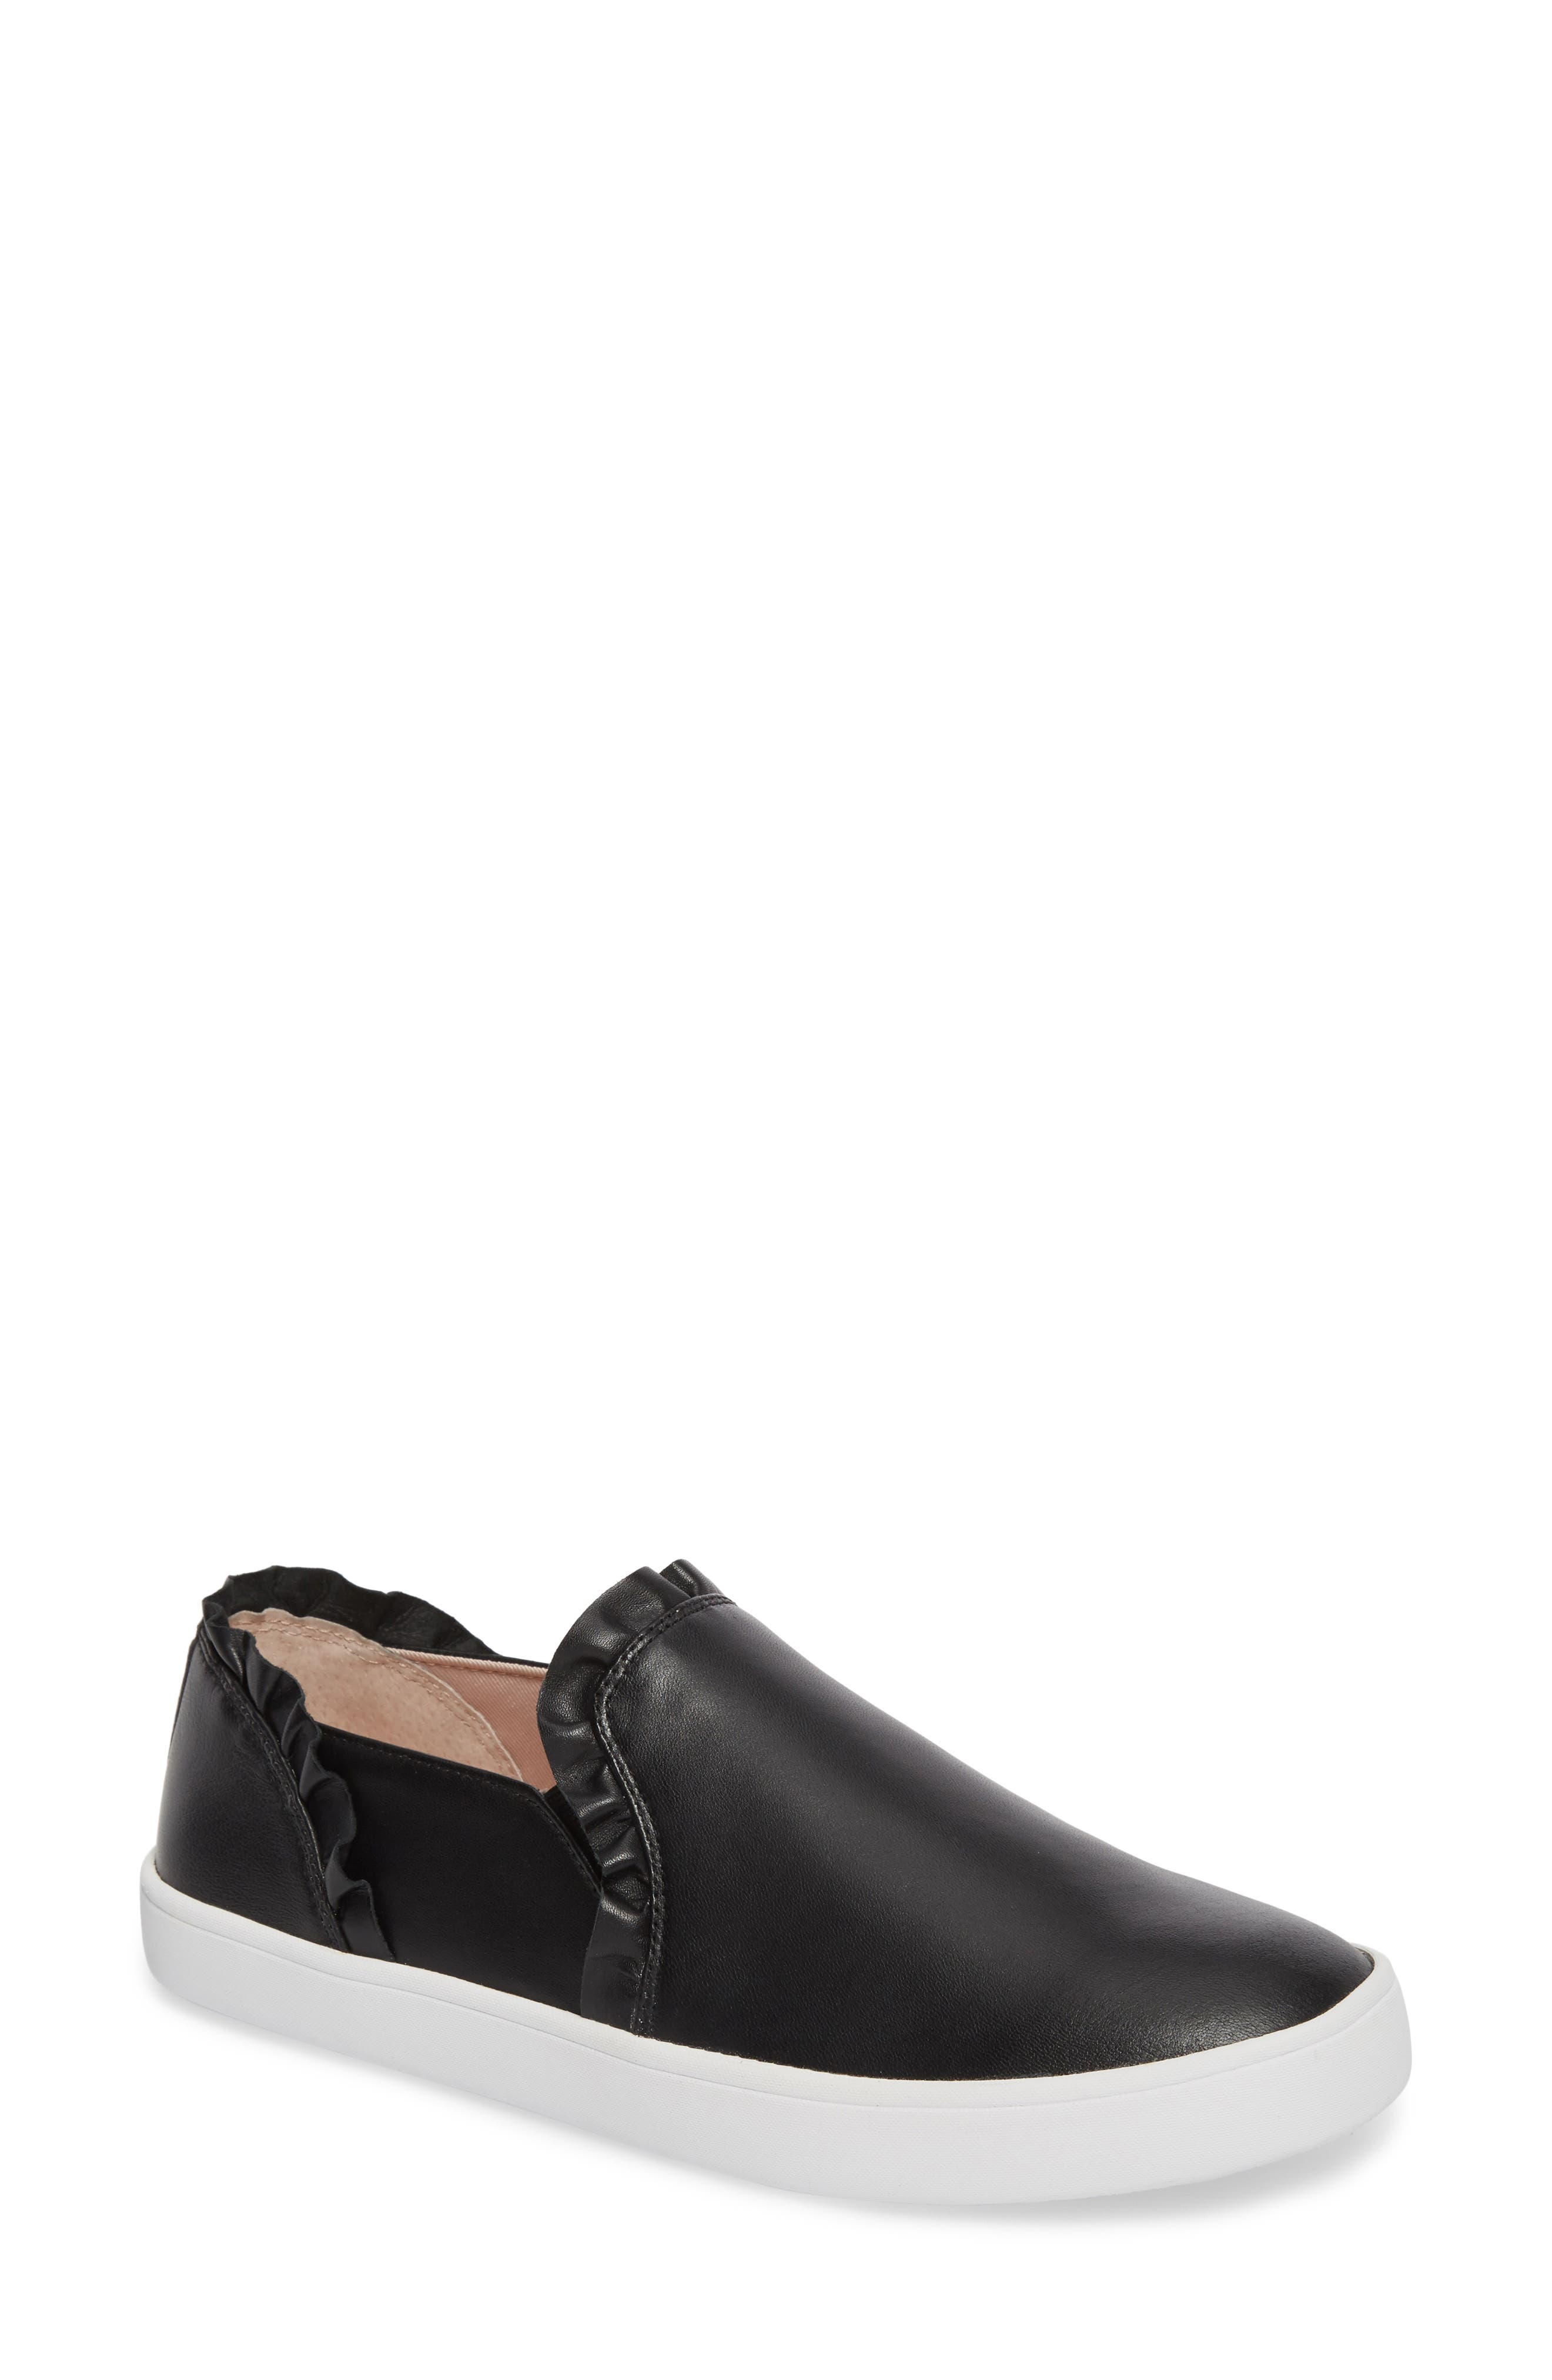 lilly ruffle slip-on sneaker,                         Main,                         color, BLACK NAPPA